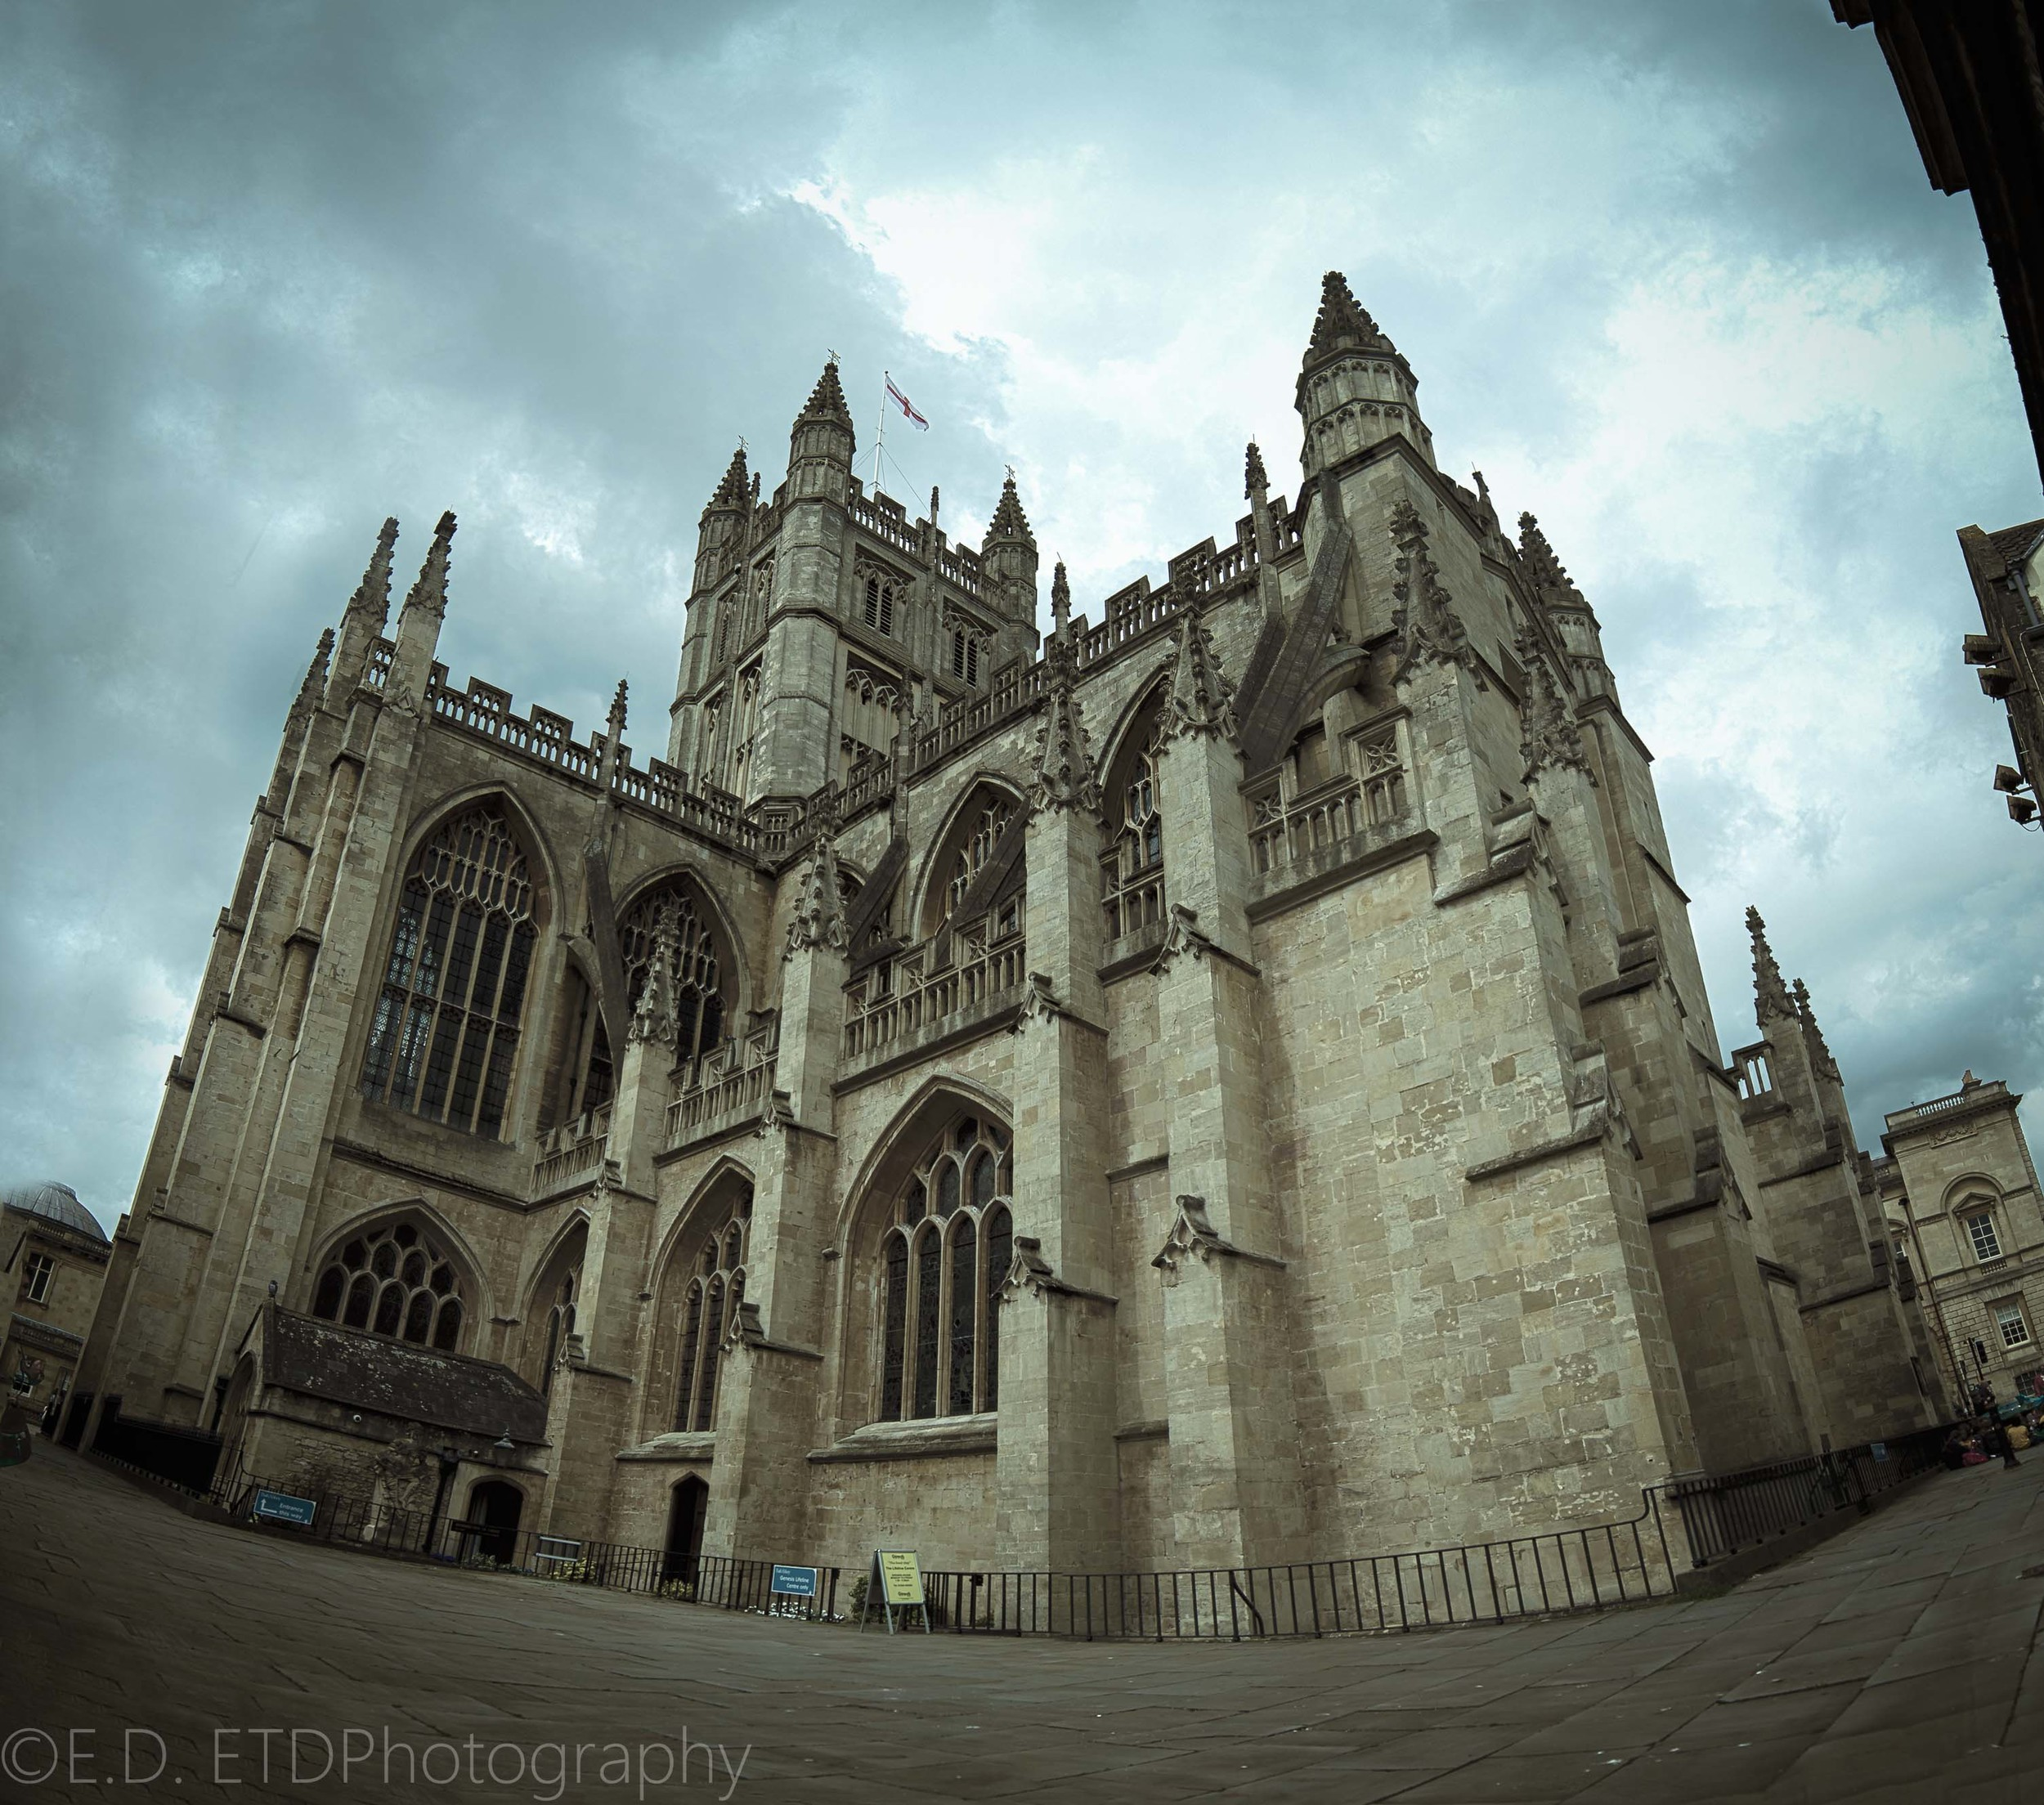 HDR can be used to make impressive architecture photos. Comprised of 6 images from a Nikon D5100.